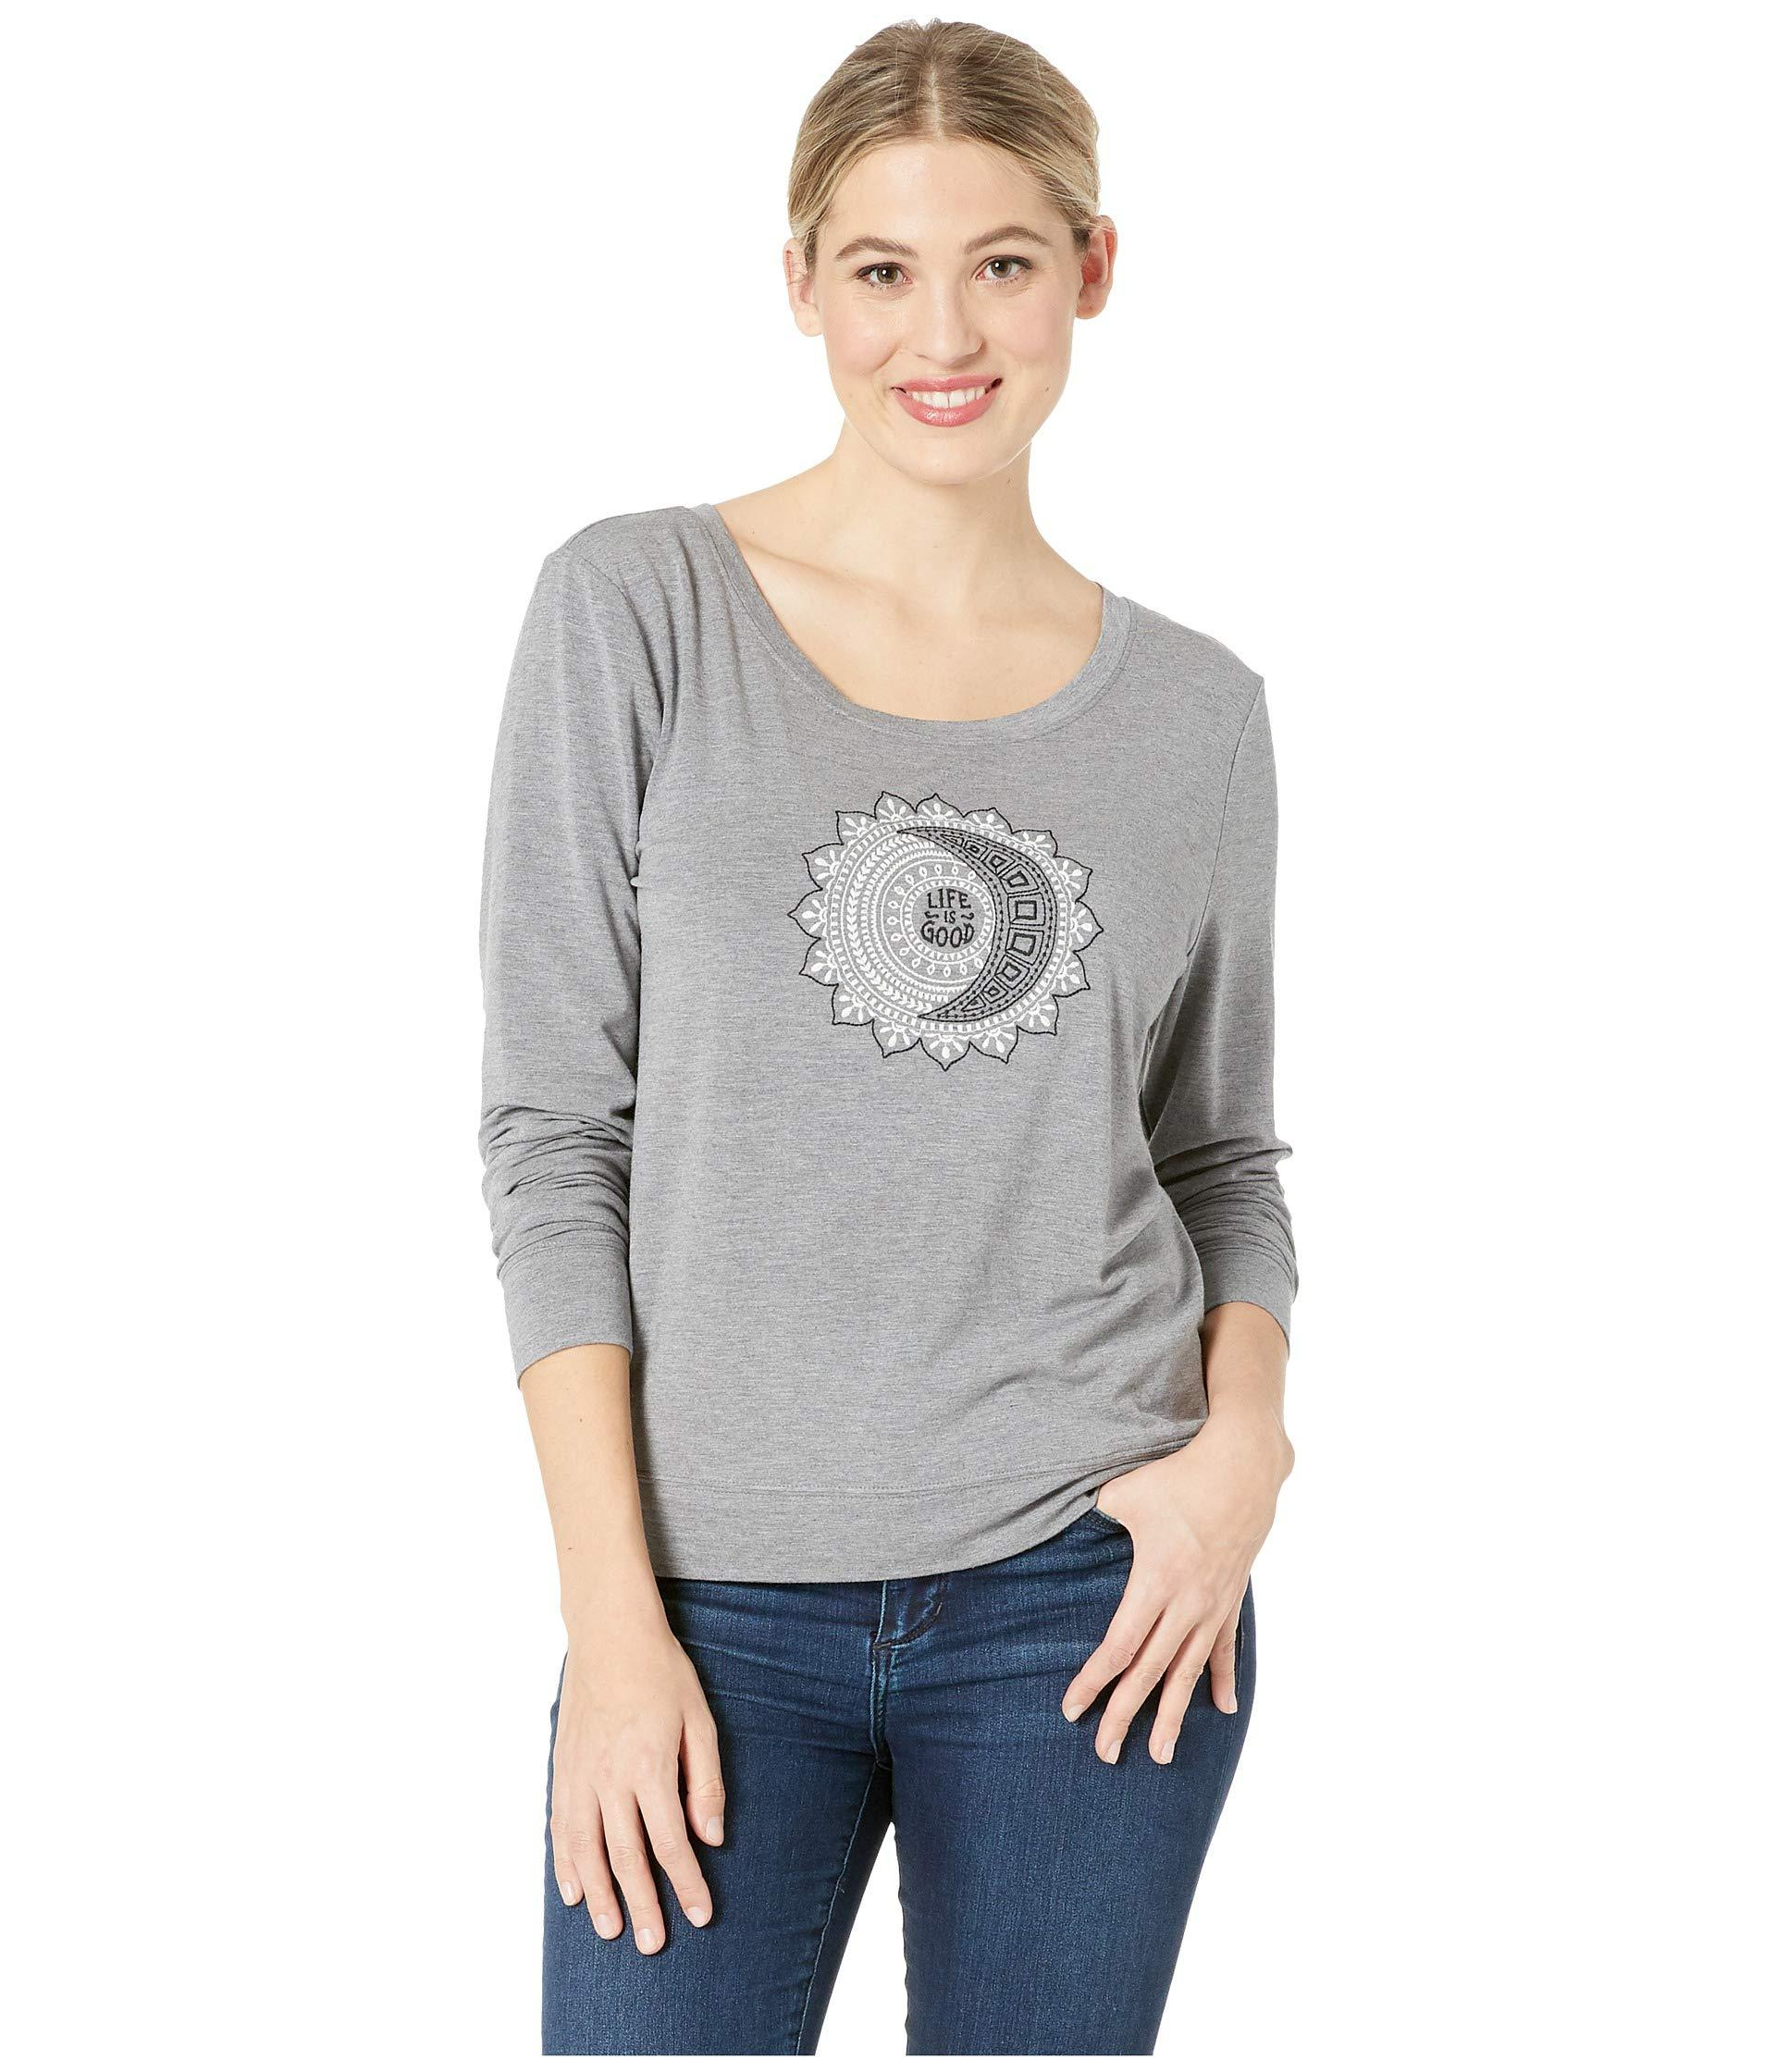 3edc8bbc7accae Lyst - Life Is Good. Supreme Scoop Pullover (heather Gray) Women s T ...